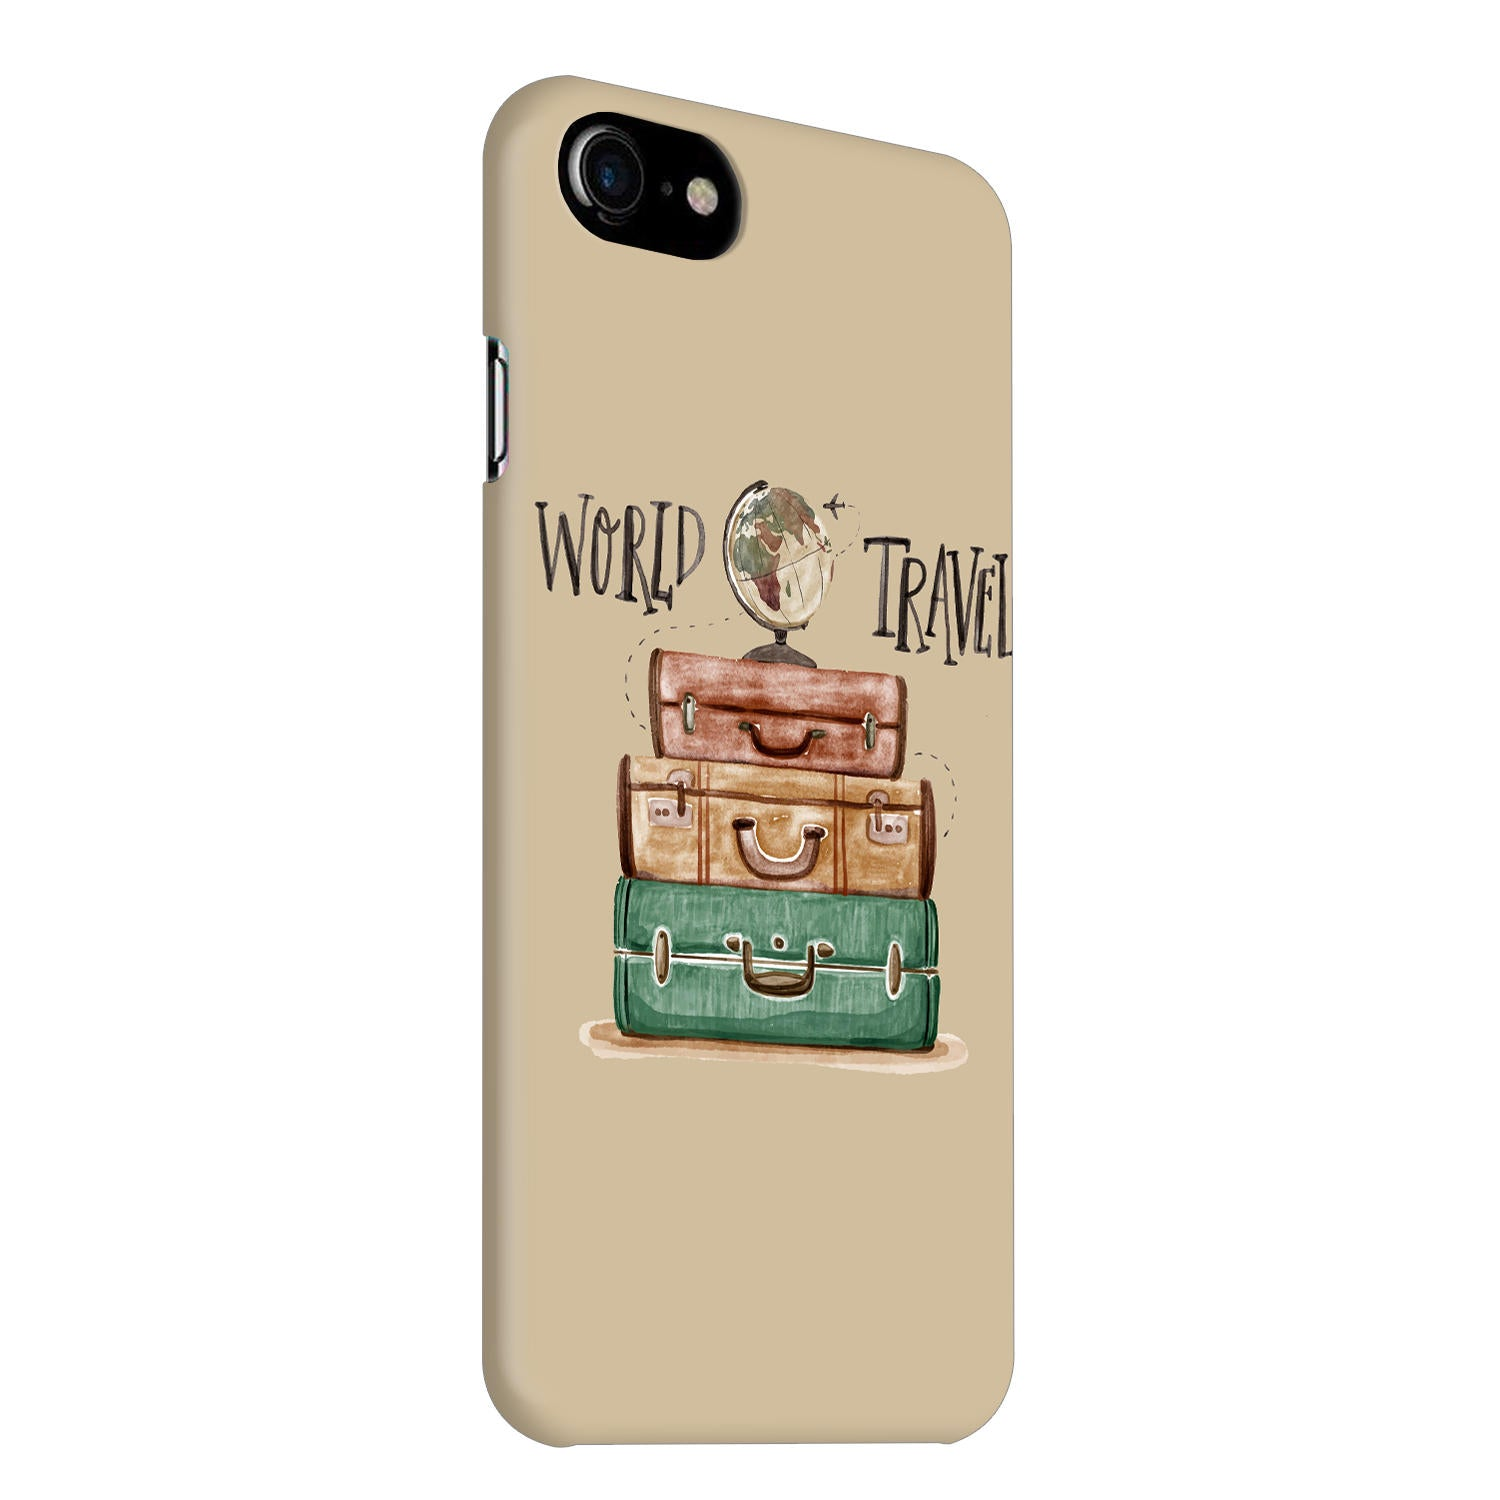 Travel World With Bags For Travellers iPhone 8 Mobile Cover Case - MADANYU